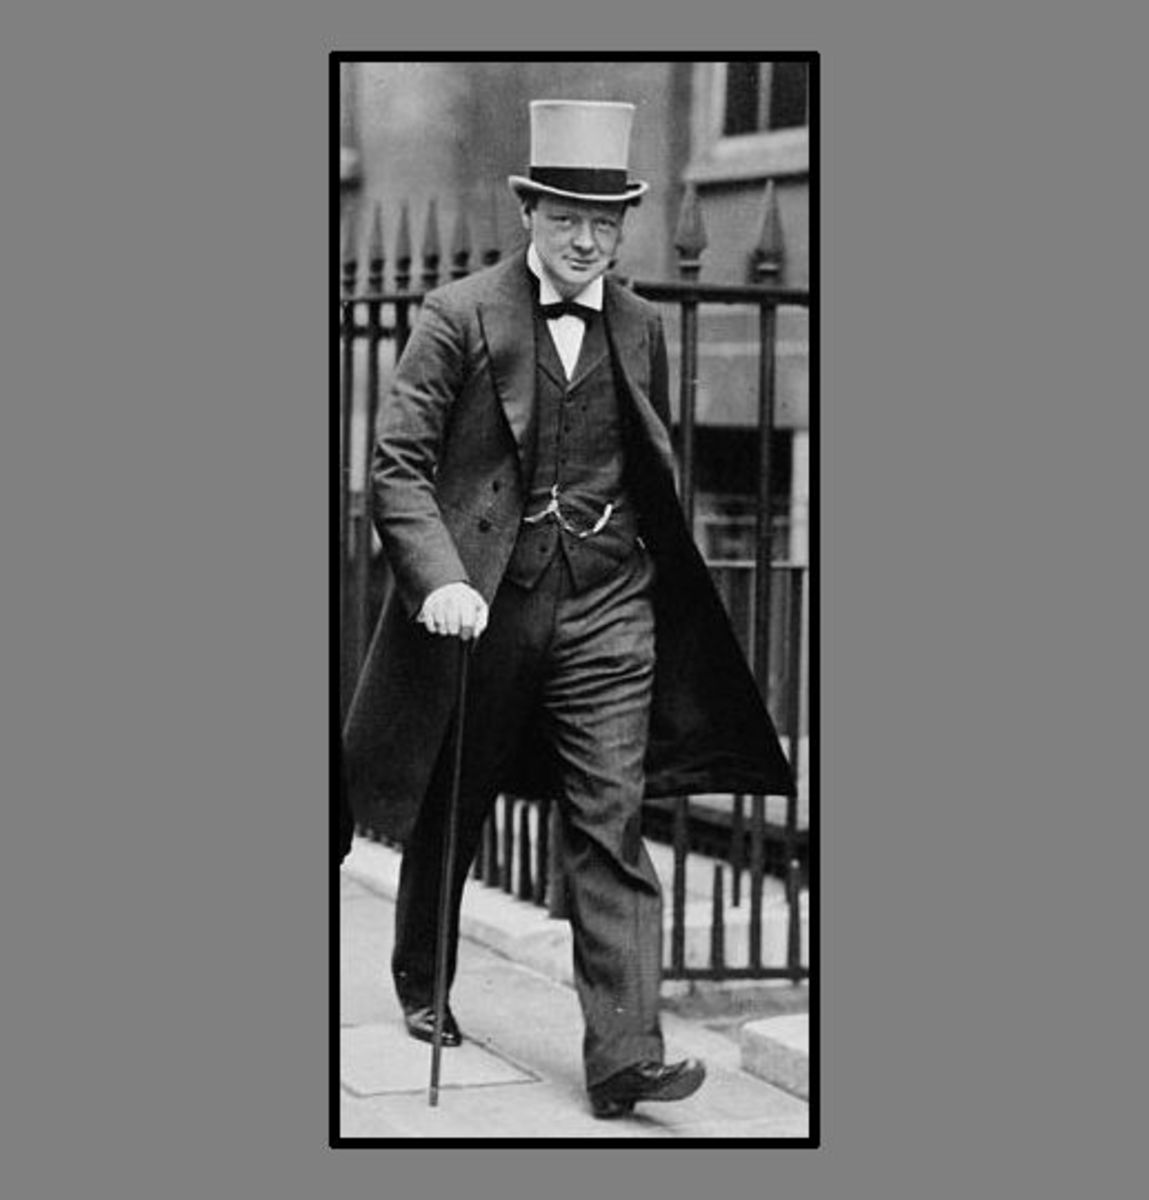 """World War One: Winston Spencer Churchill in 1911, a few months after he wrote """"Military Aspects of the Continental Problem"""" and had become First Lord of the Admiralty."""